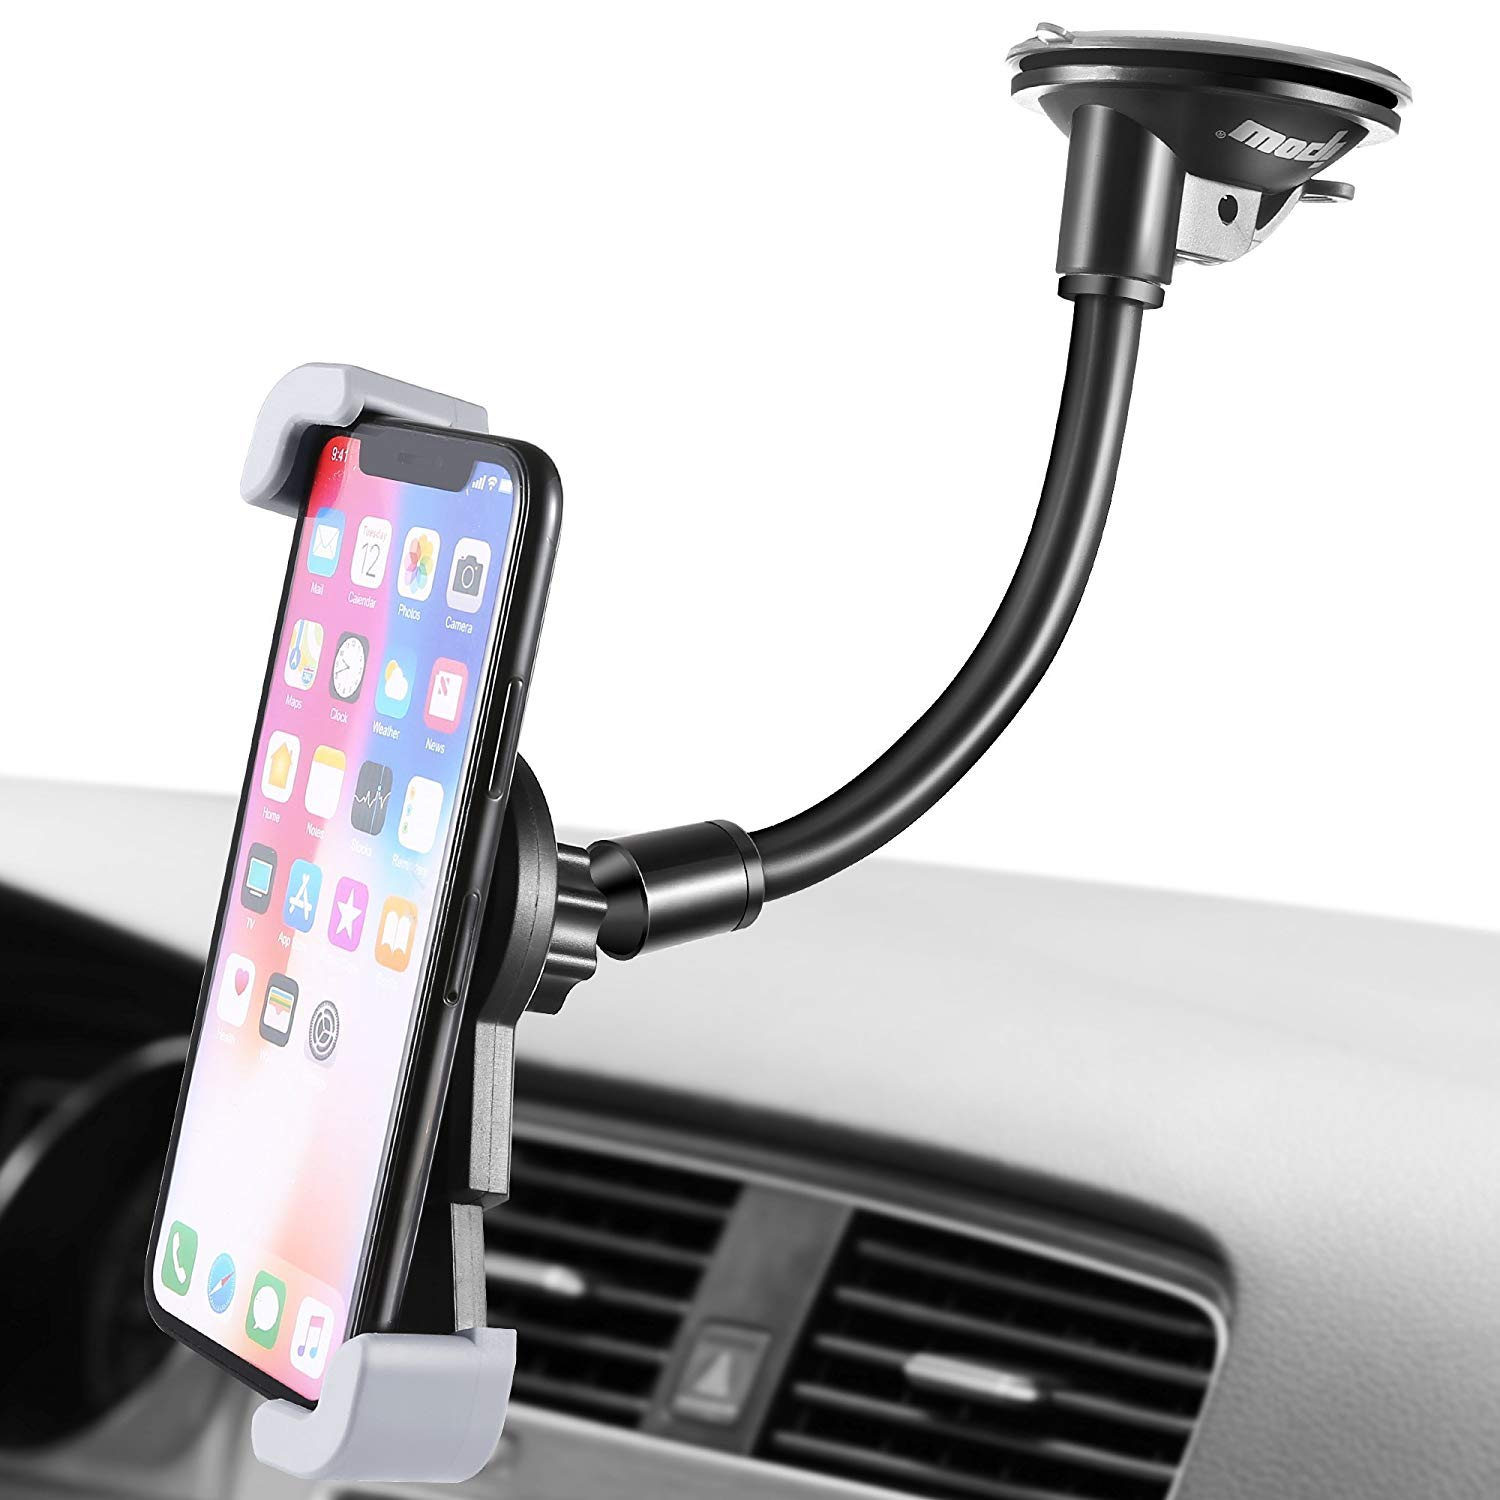 IPOW Car Phone Holder, Dashboard/Windsheild Car Phone Mount Cell Phone Holder Stand for Car with Strong Suction Cup for Mobile GPS iphone X 8 Plus 7 Plus 6 6s Plus Samsung Galaxy S9 S8 S7 Smartphones